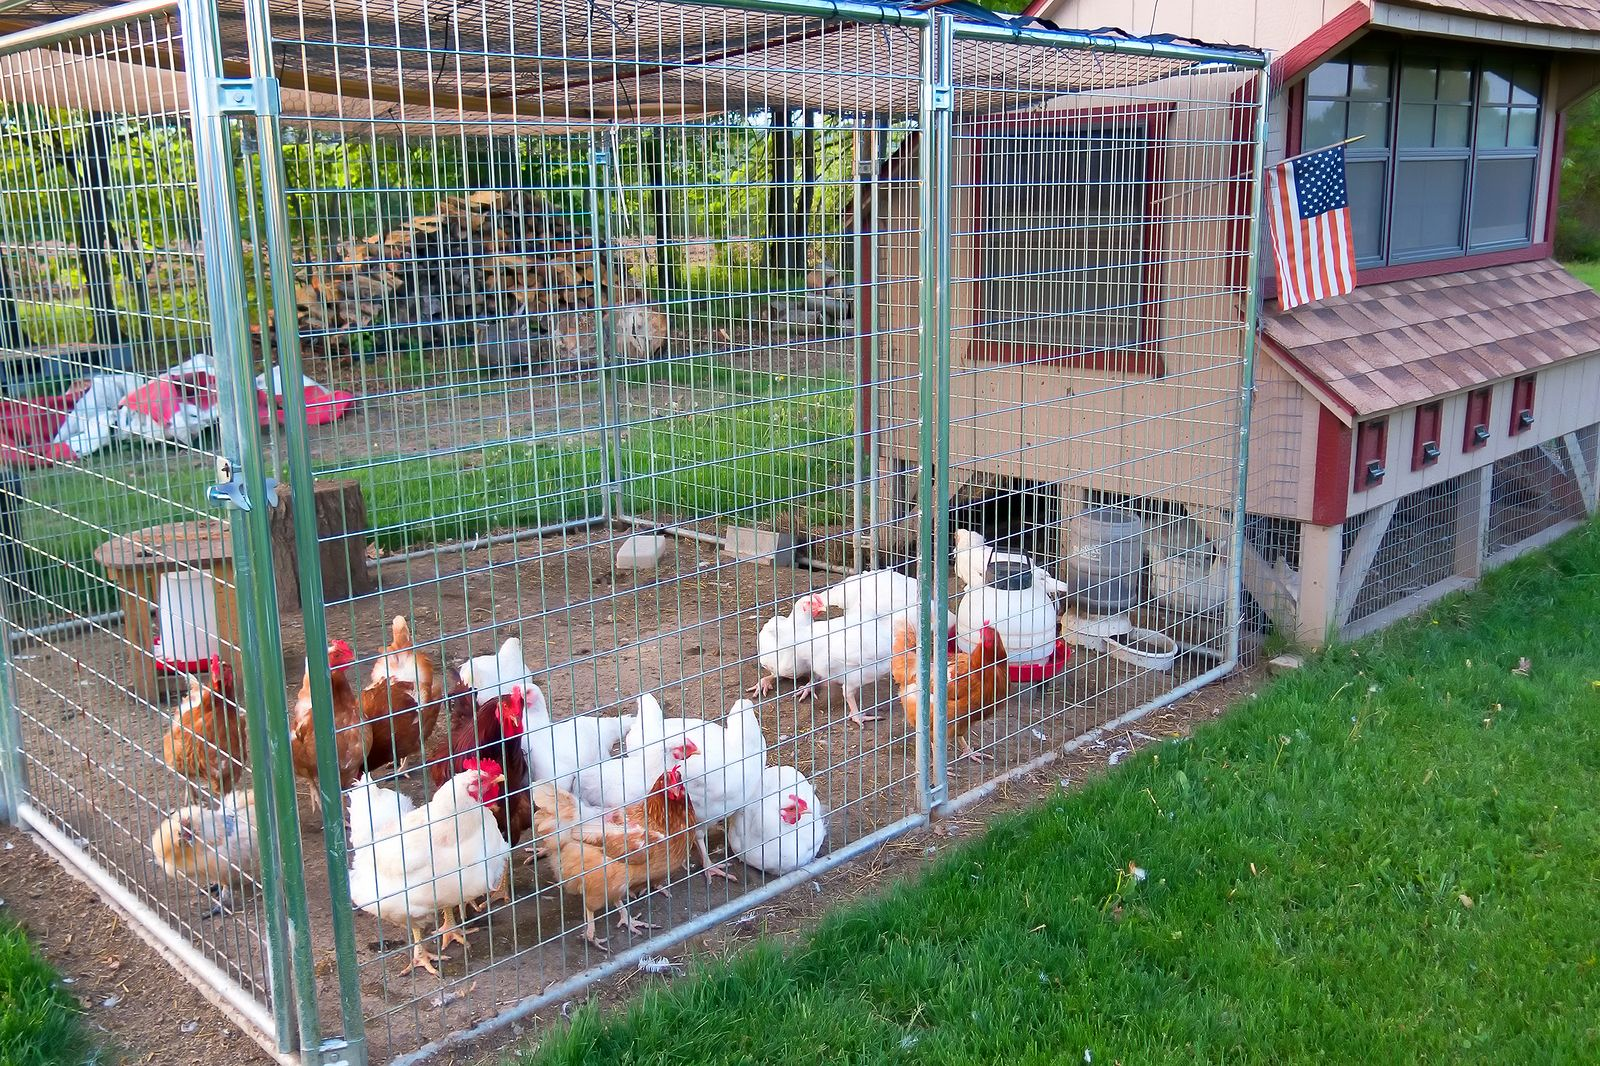 Small Chicken Coop And Fenced Area For Egg Laying Fowl Chickens Backyard Raising Backyard Chickens Chicken Coop